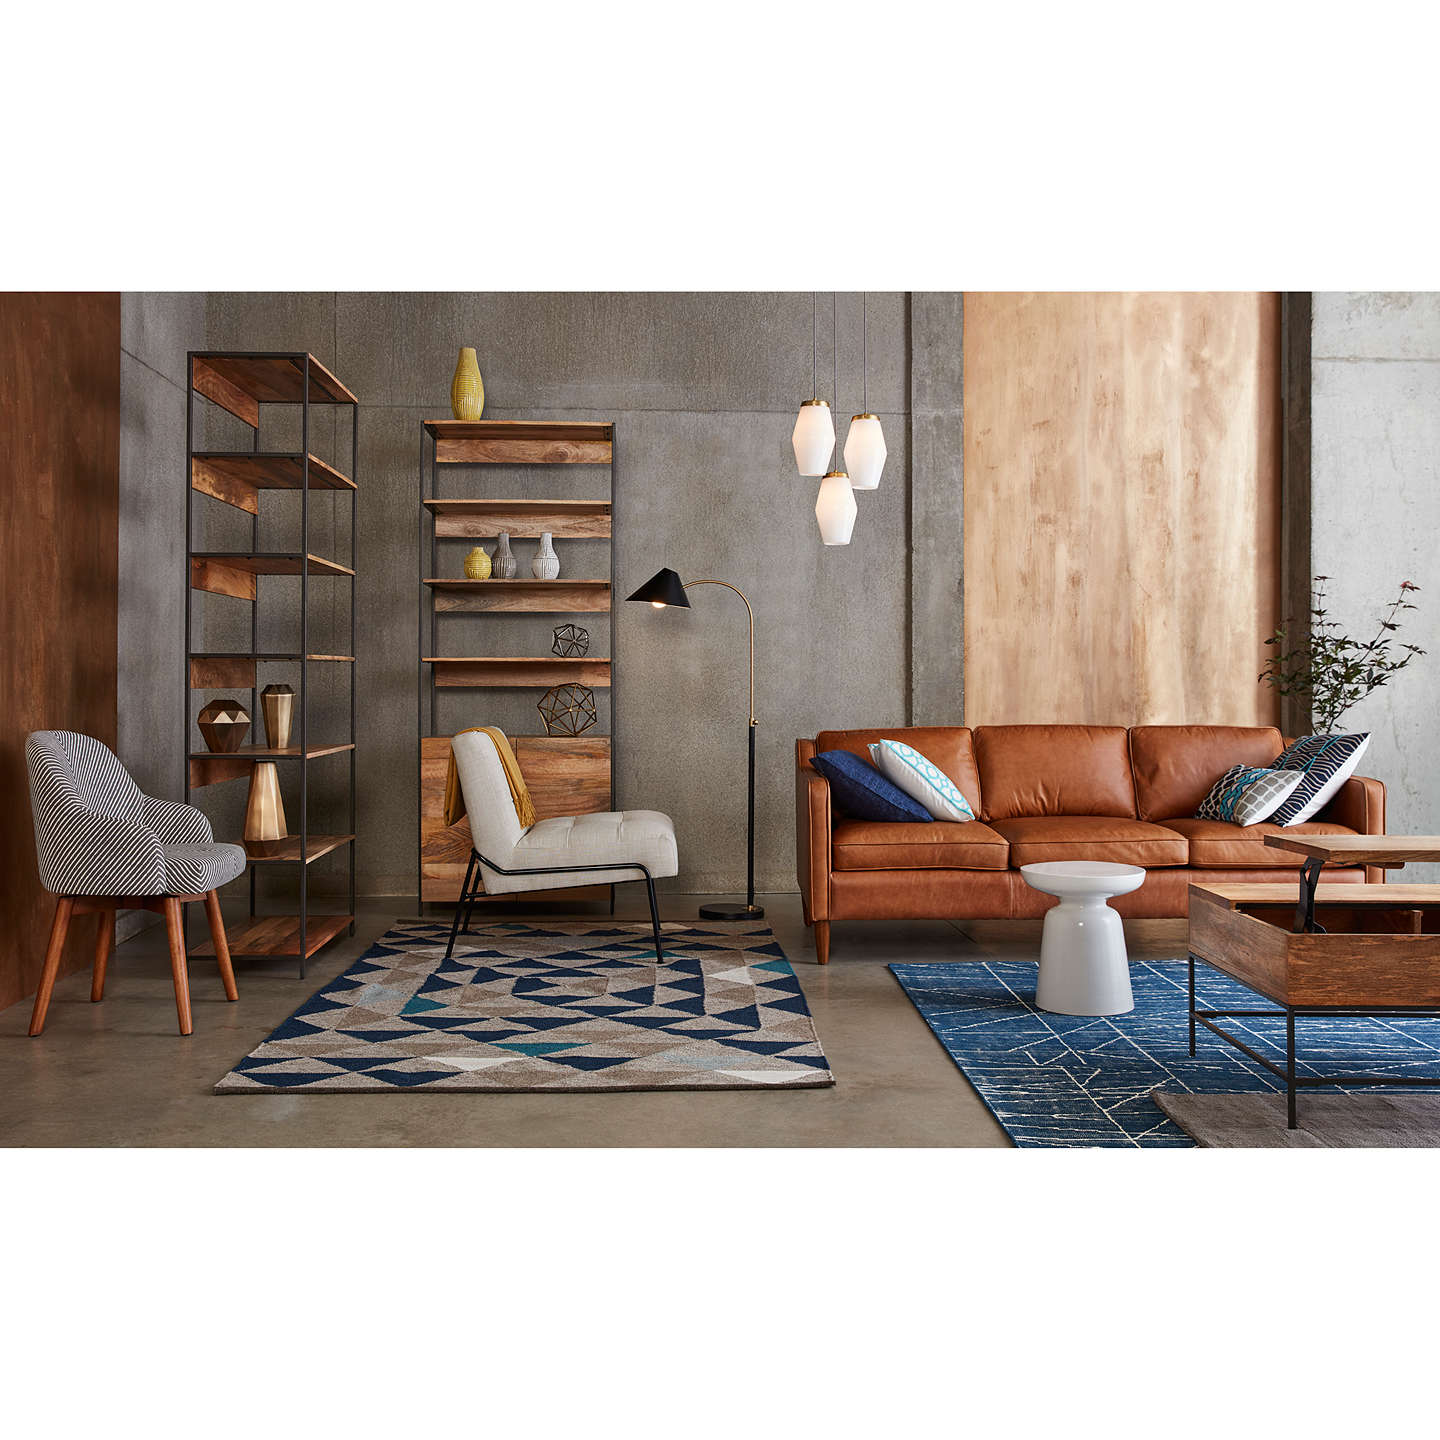 West elm hamilton 3 seater sofa sienna at john lewis for Best west elm sofa